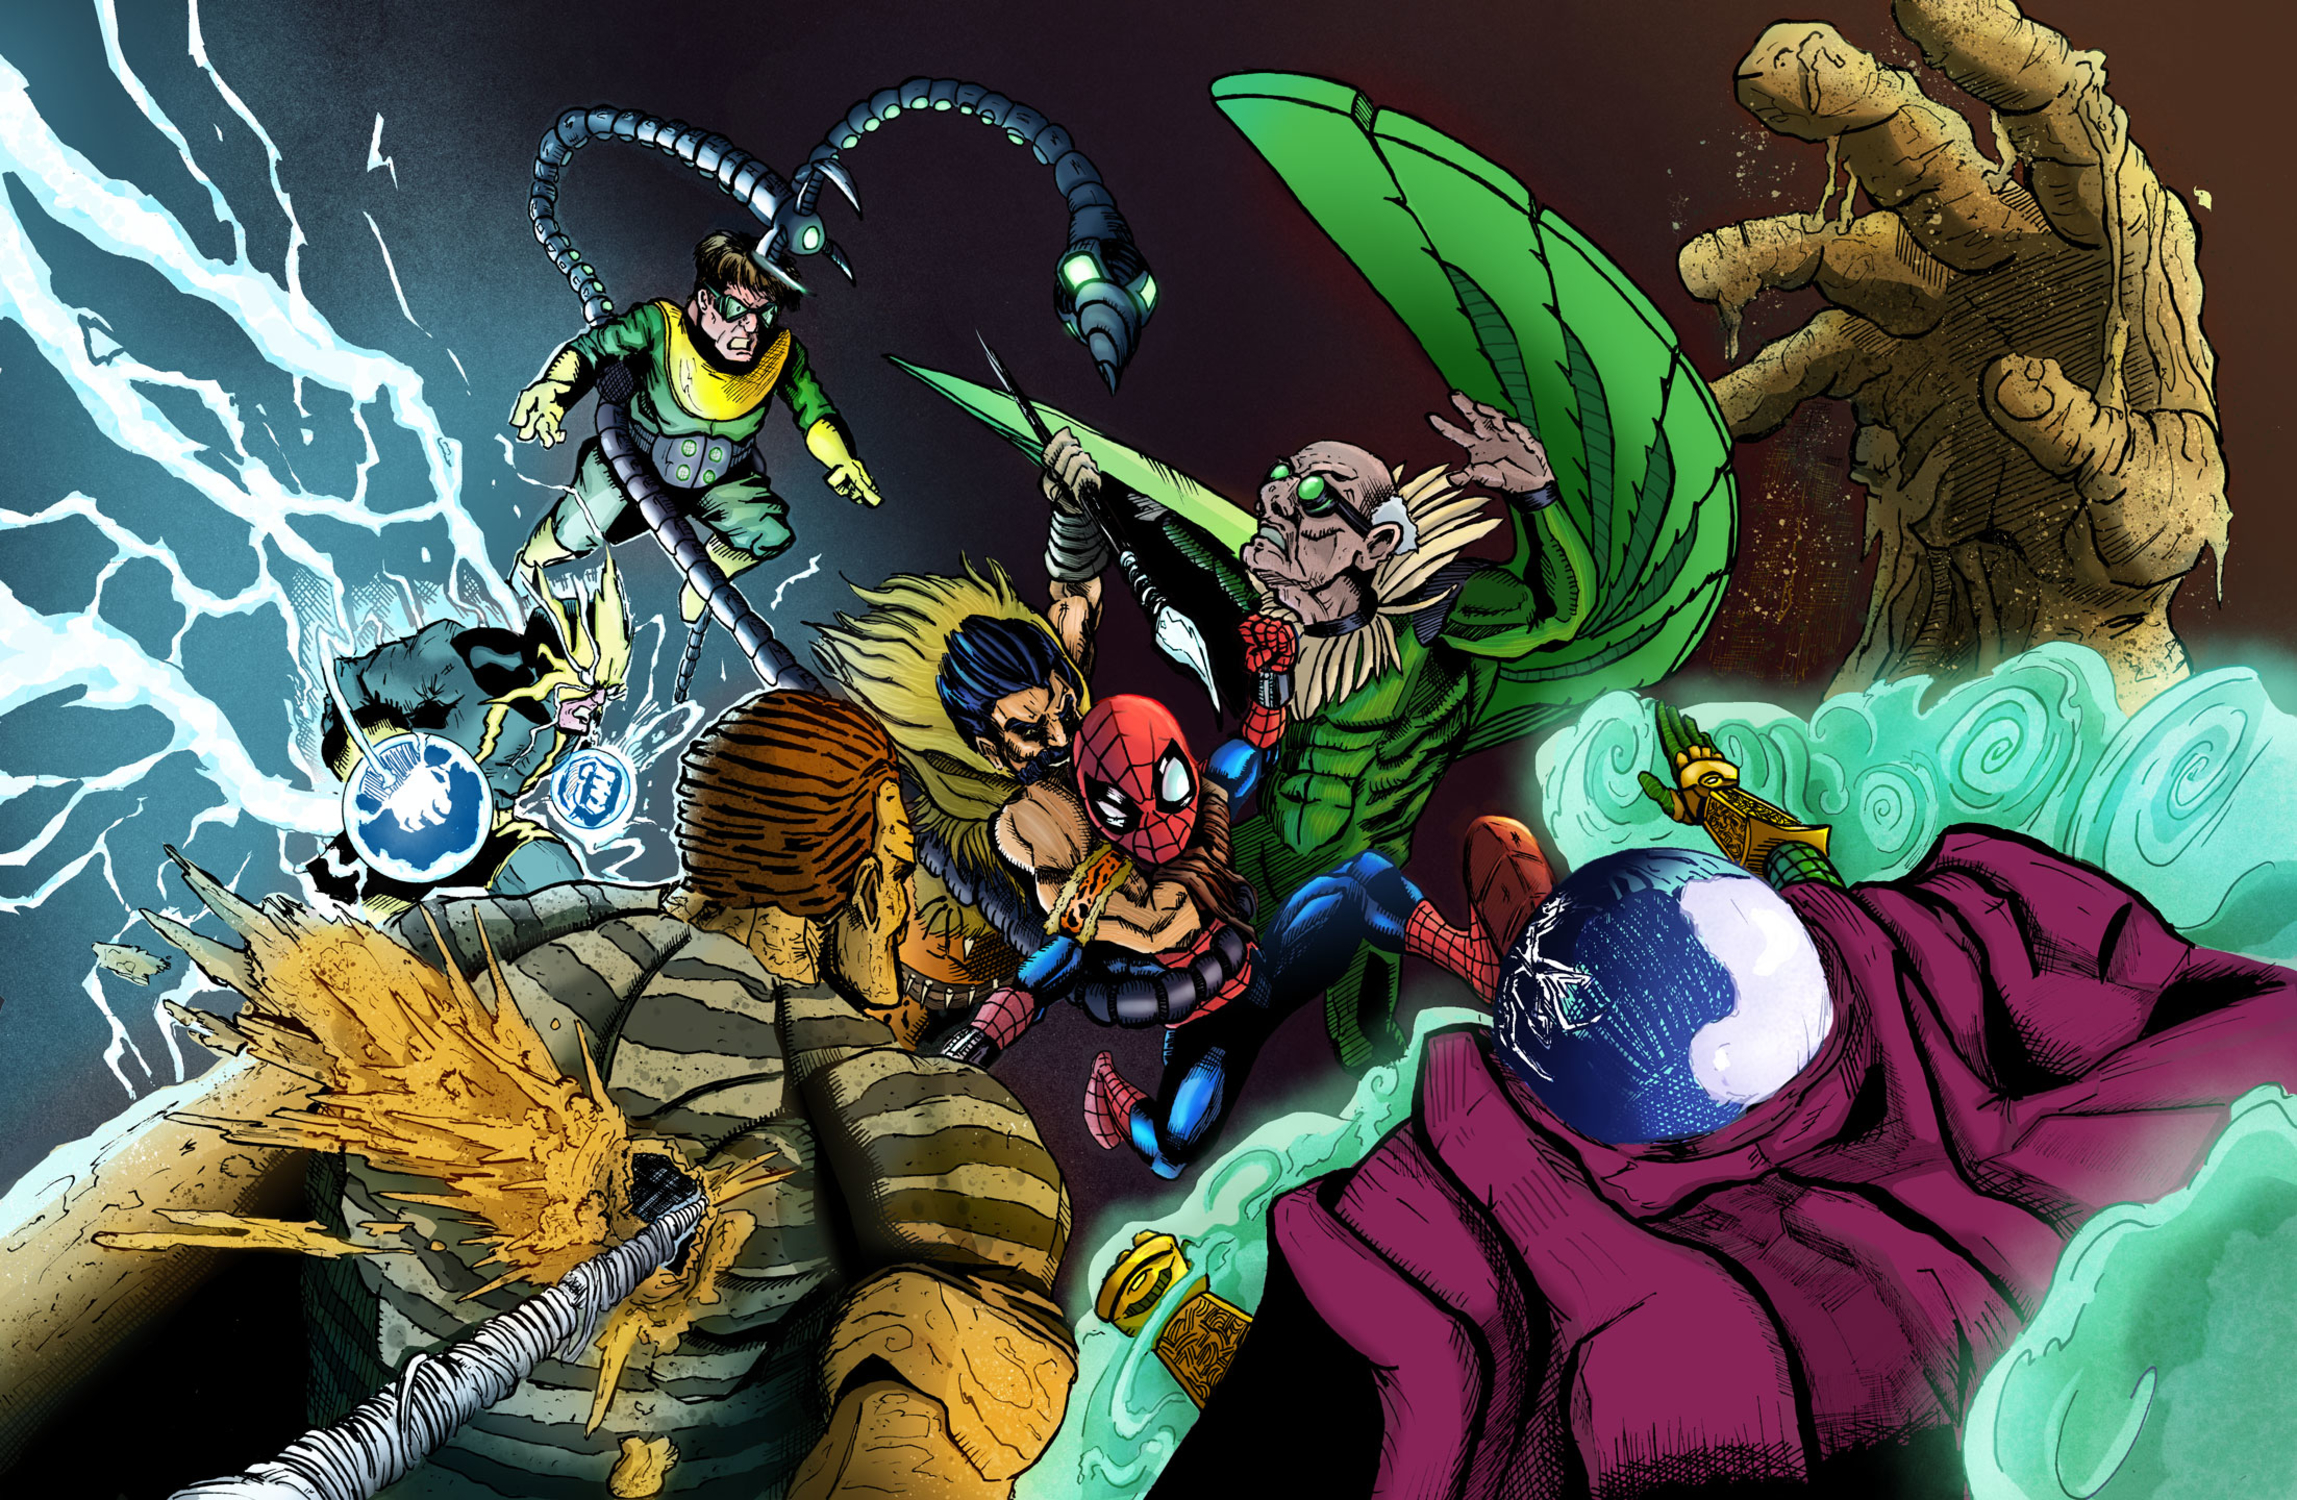 Spider-man and The Sinister Six  Artwork by Drew Norman